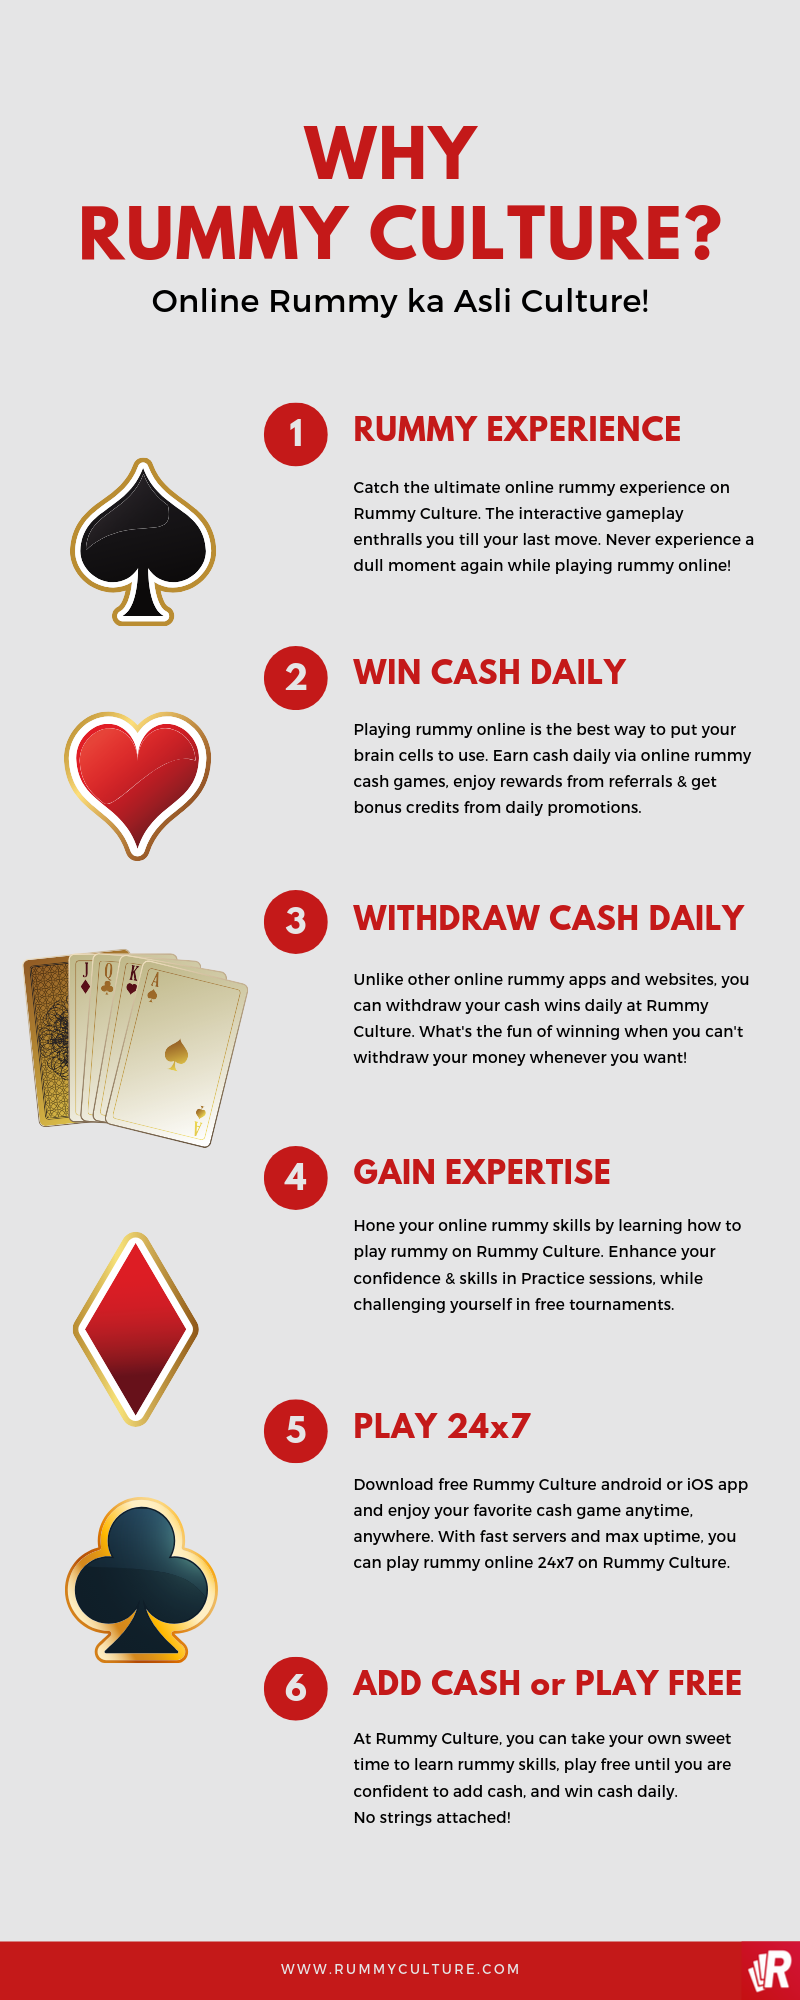 6 Reasons Why Rummyculture is the best app for online rummy